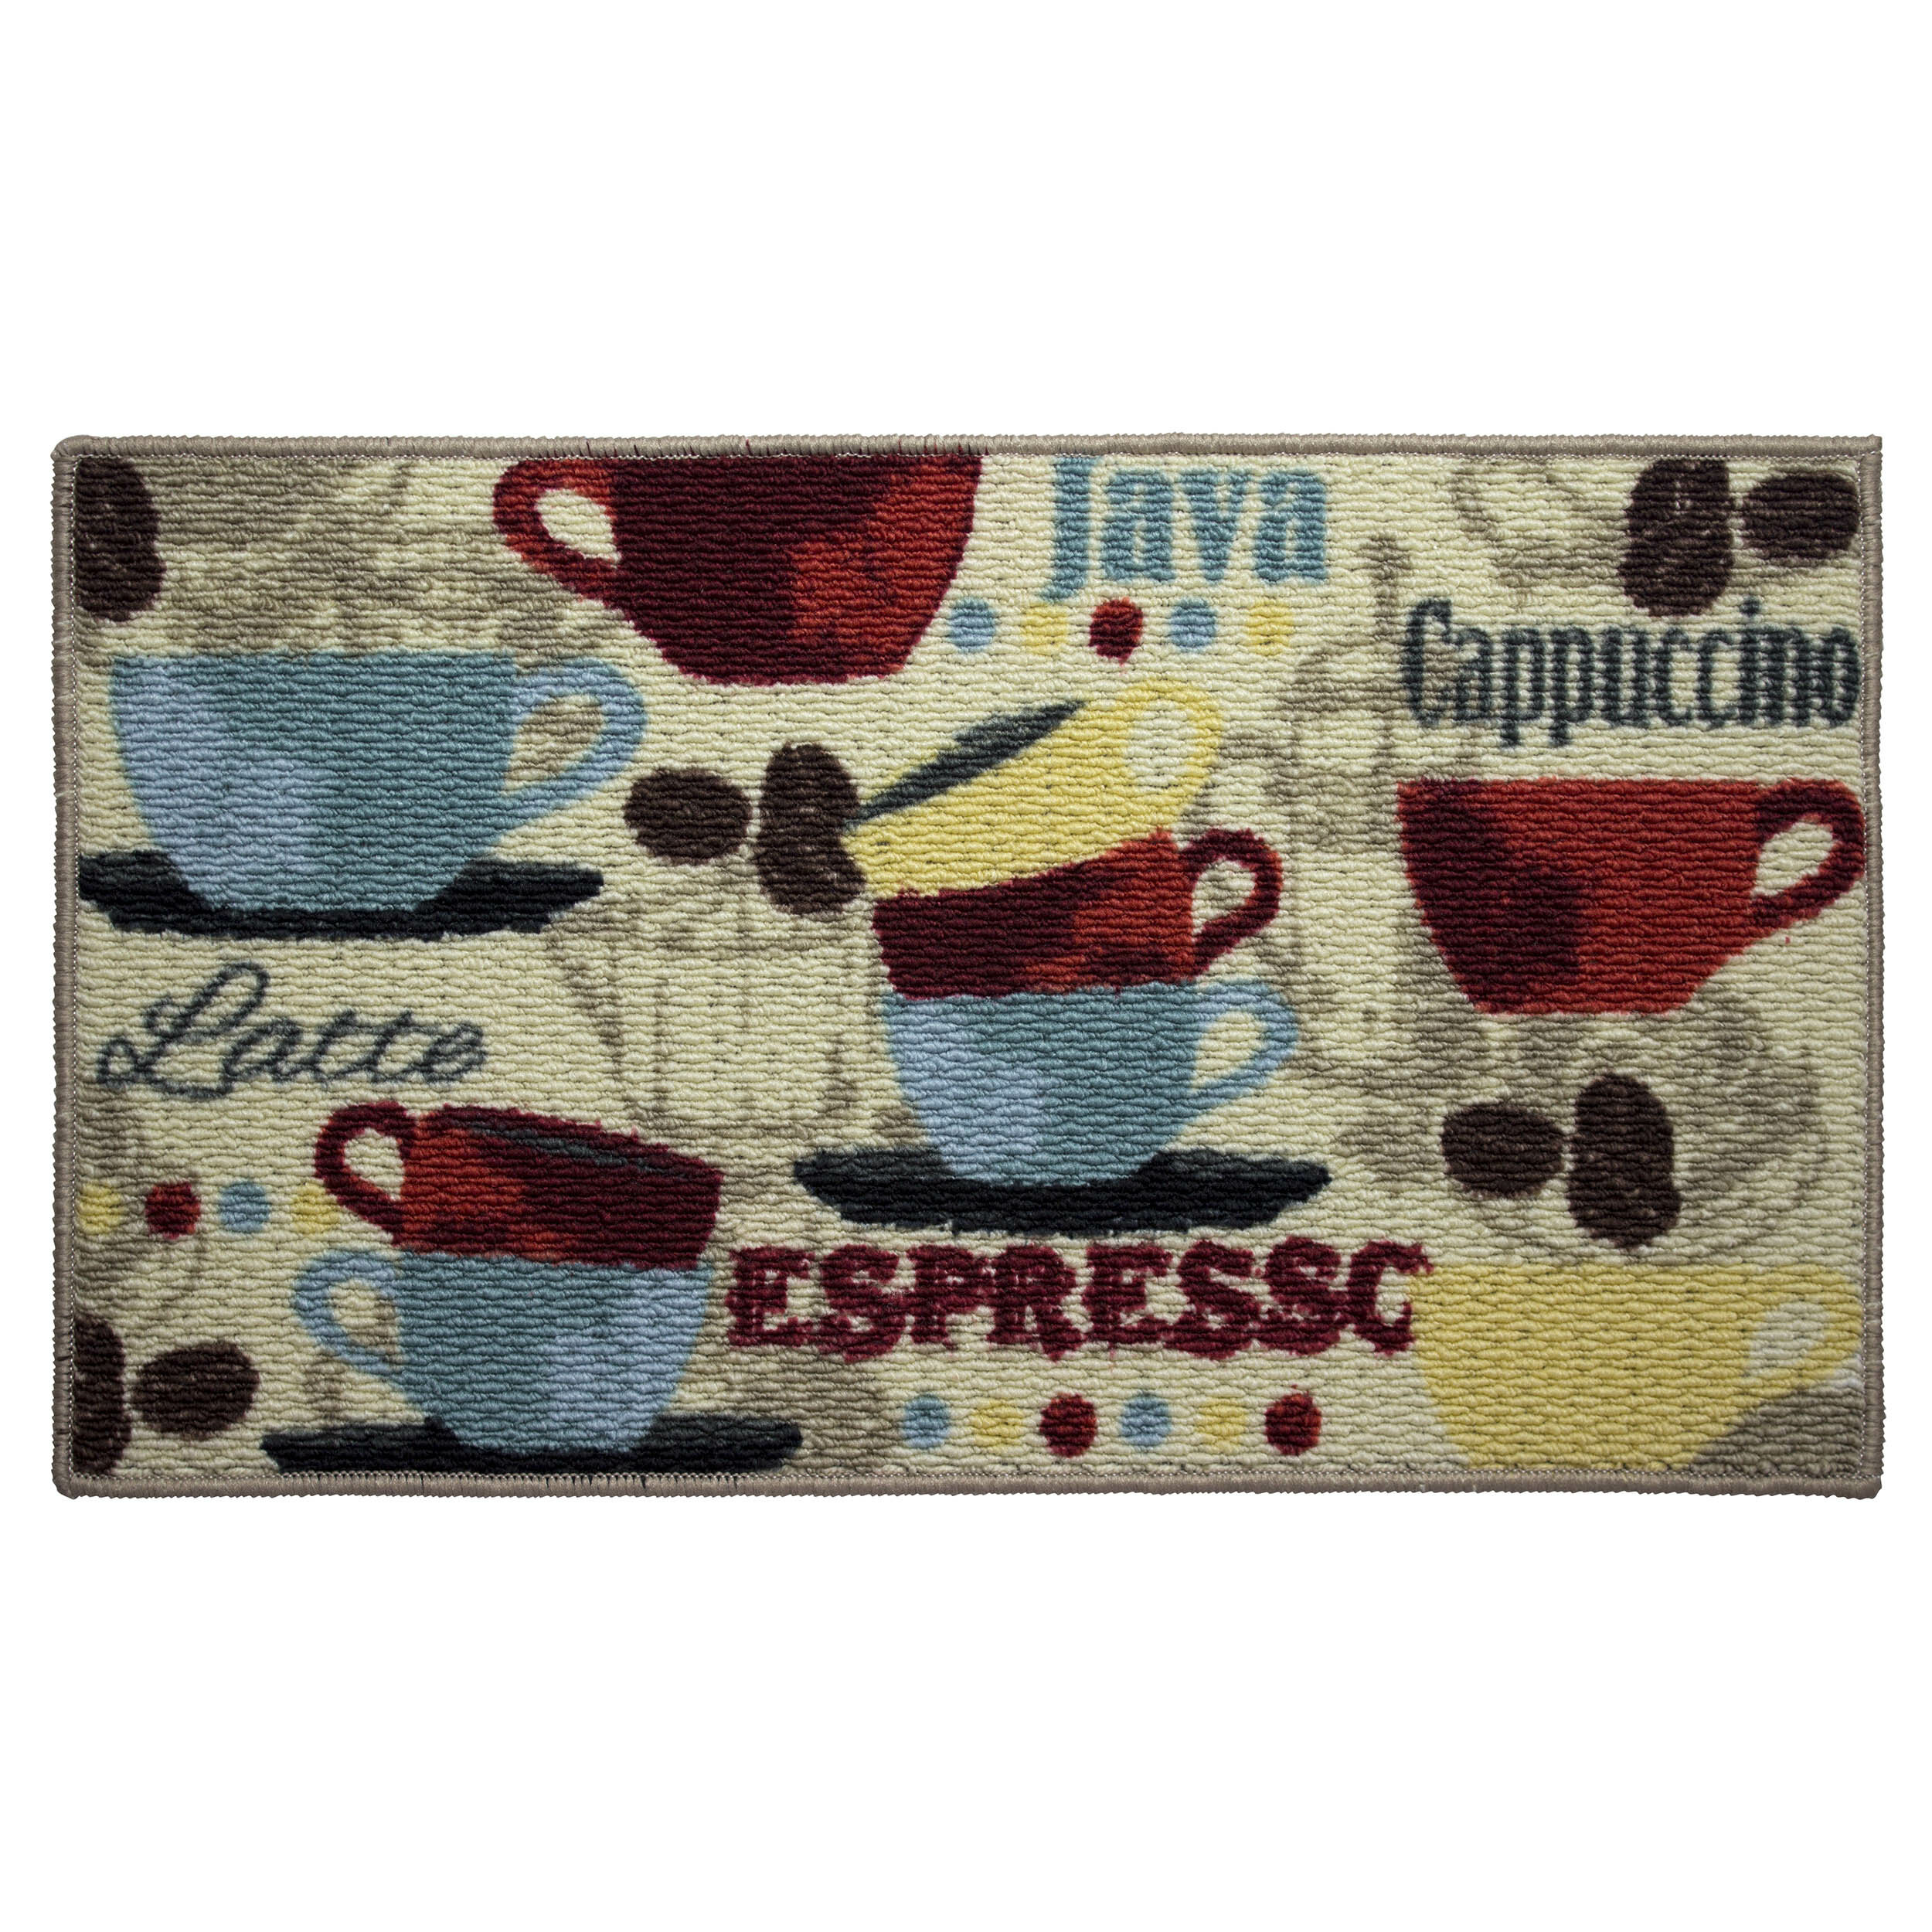 Structures Textured Loop Coffee Kitchen Area Rug & Reviews